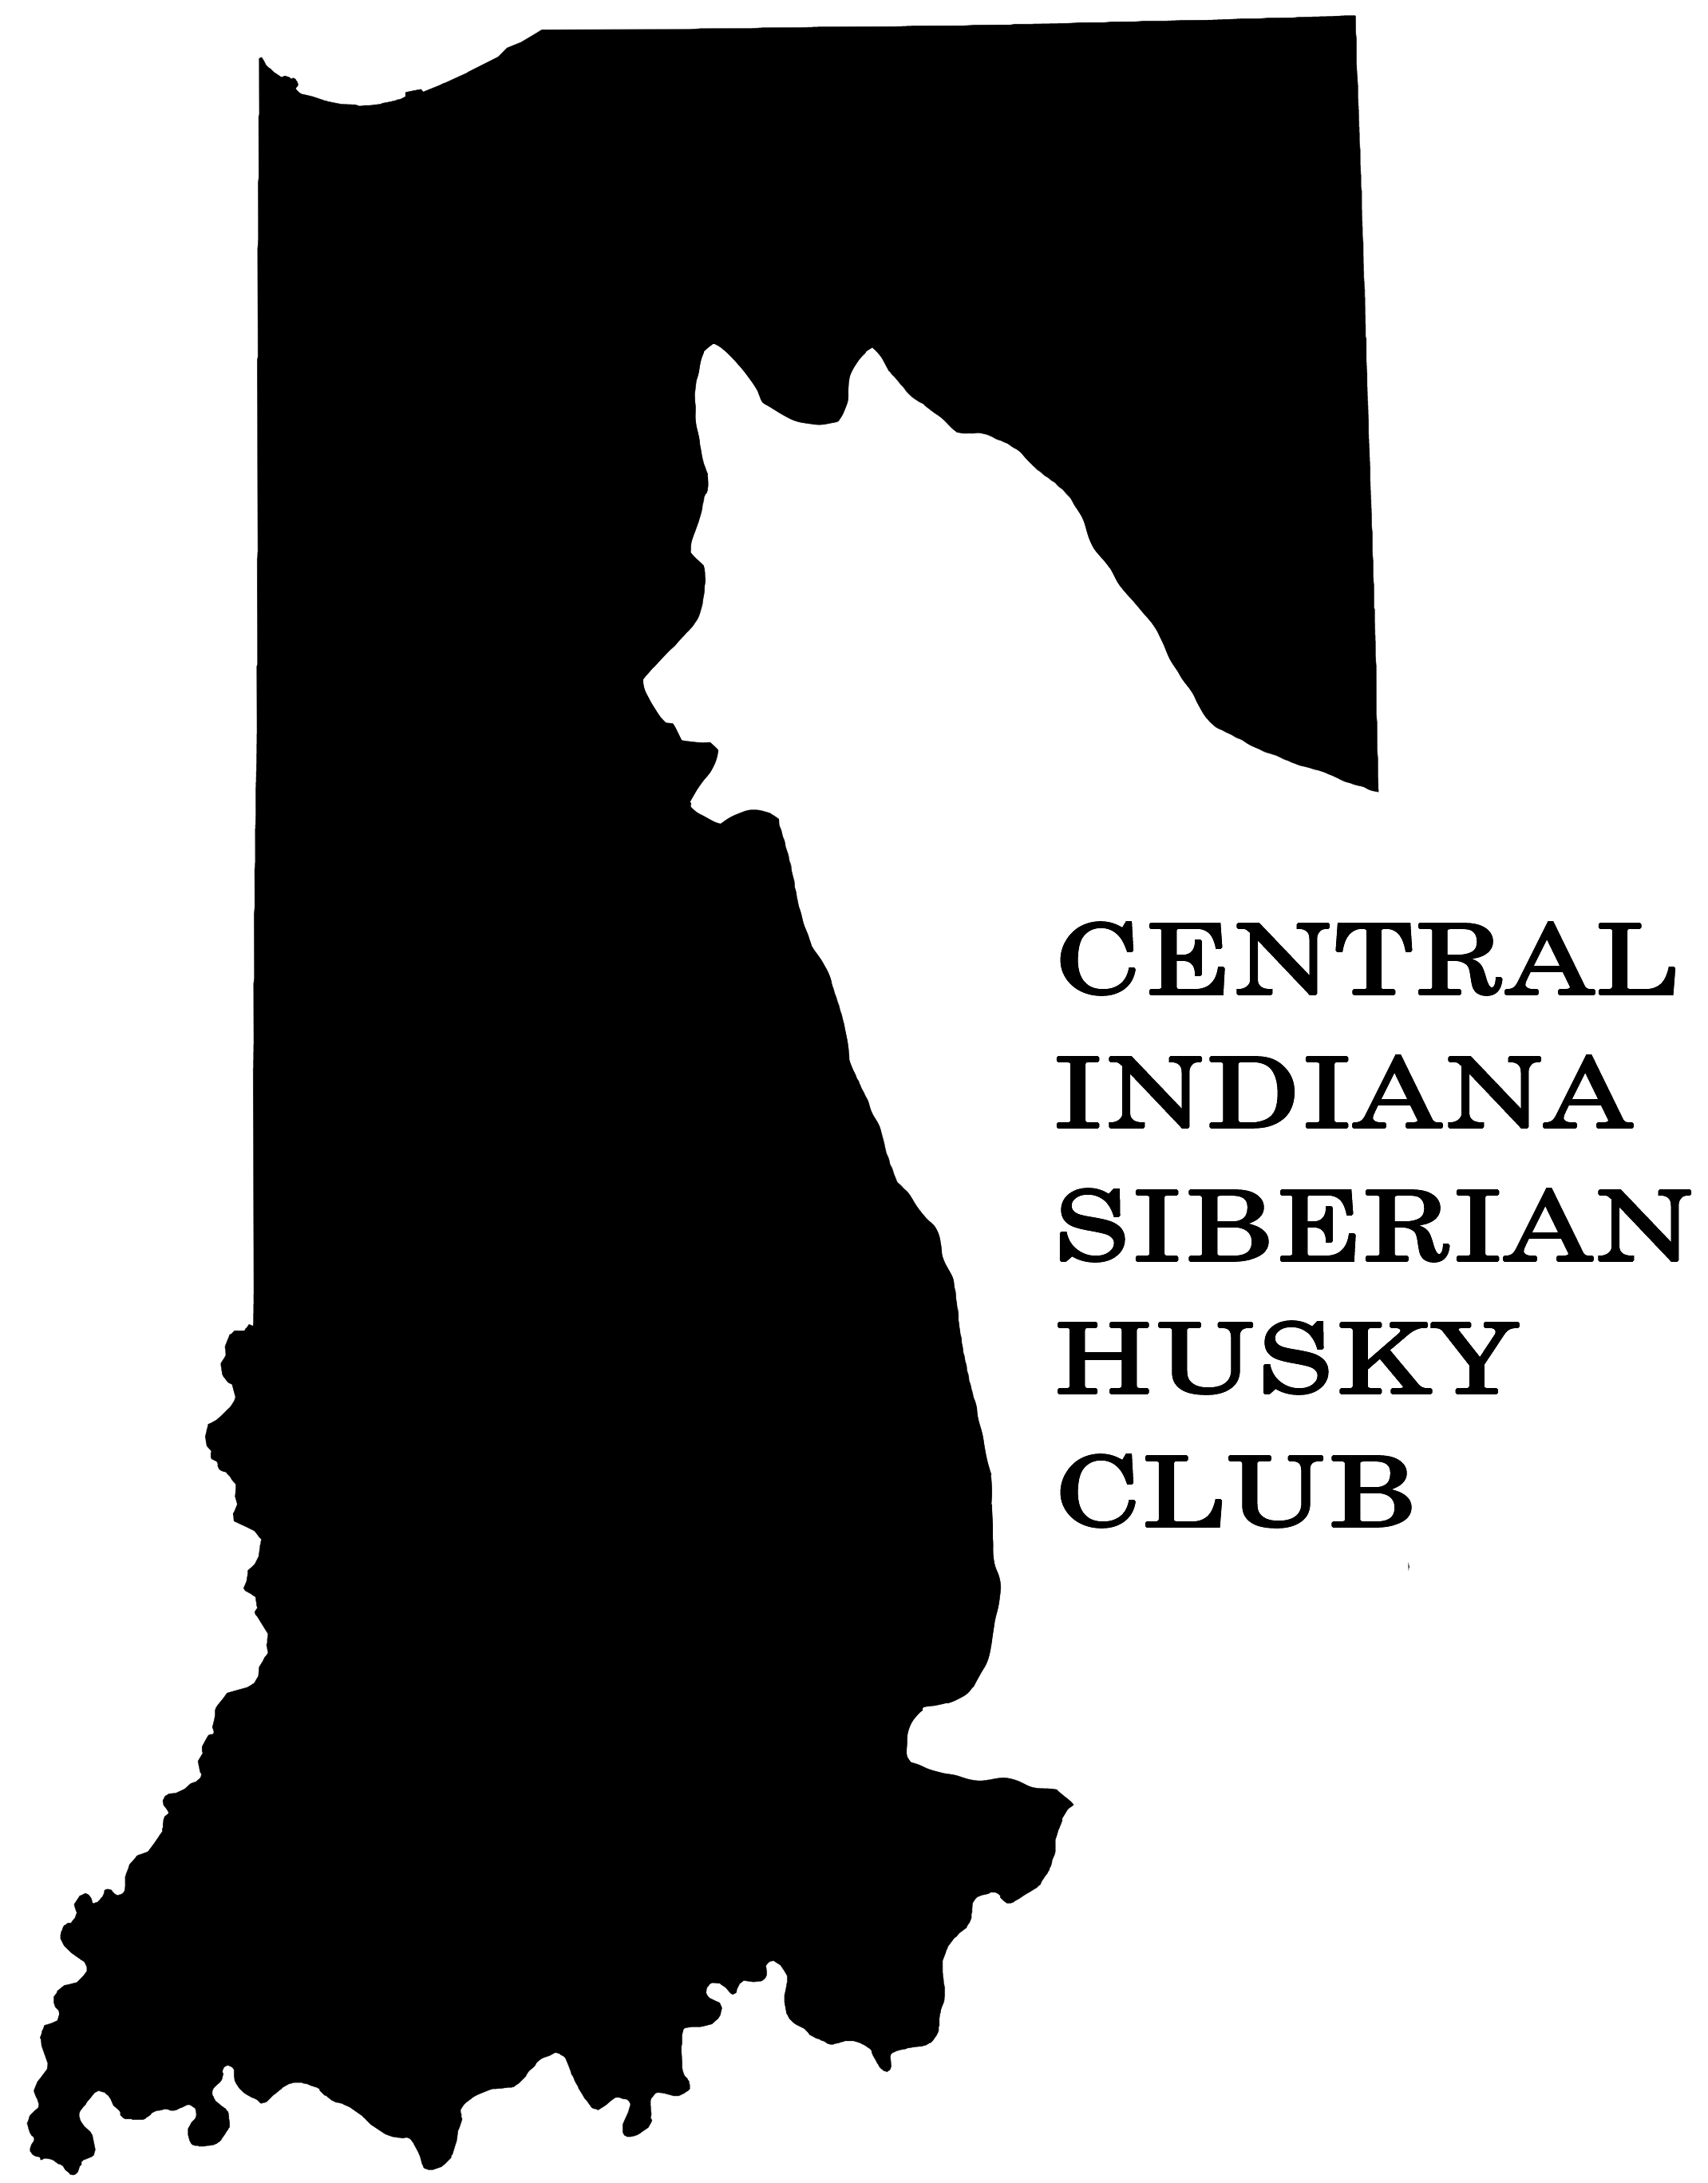 Central Indiana Siberian Husky Club